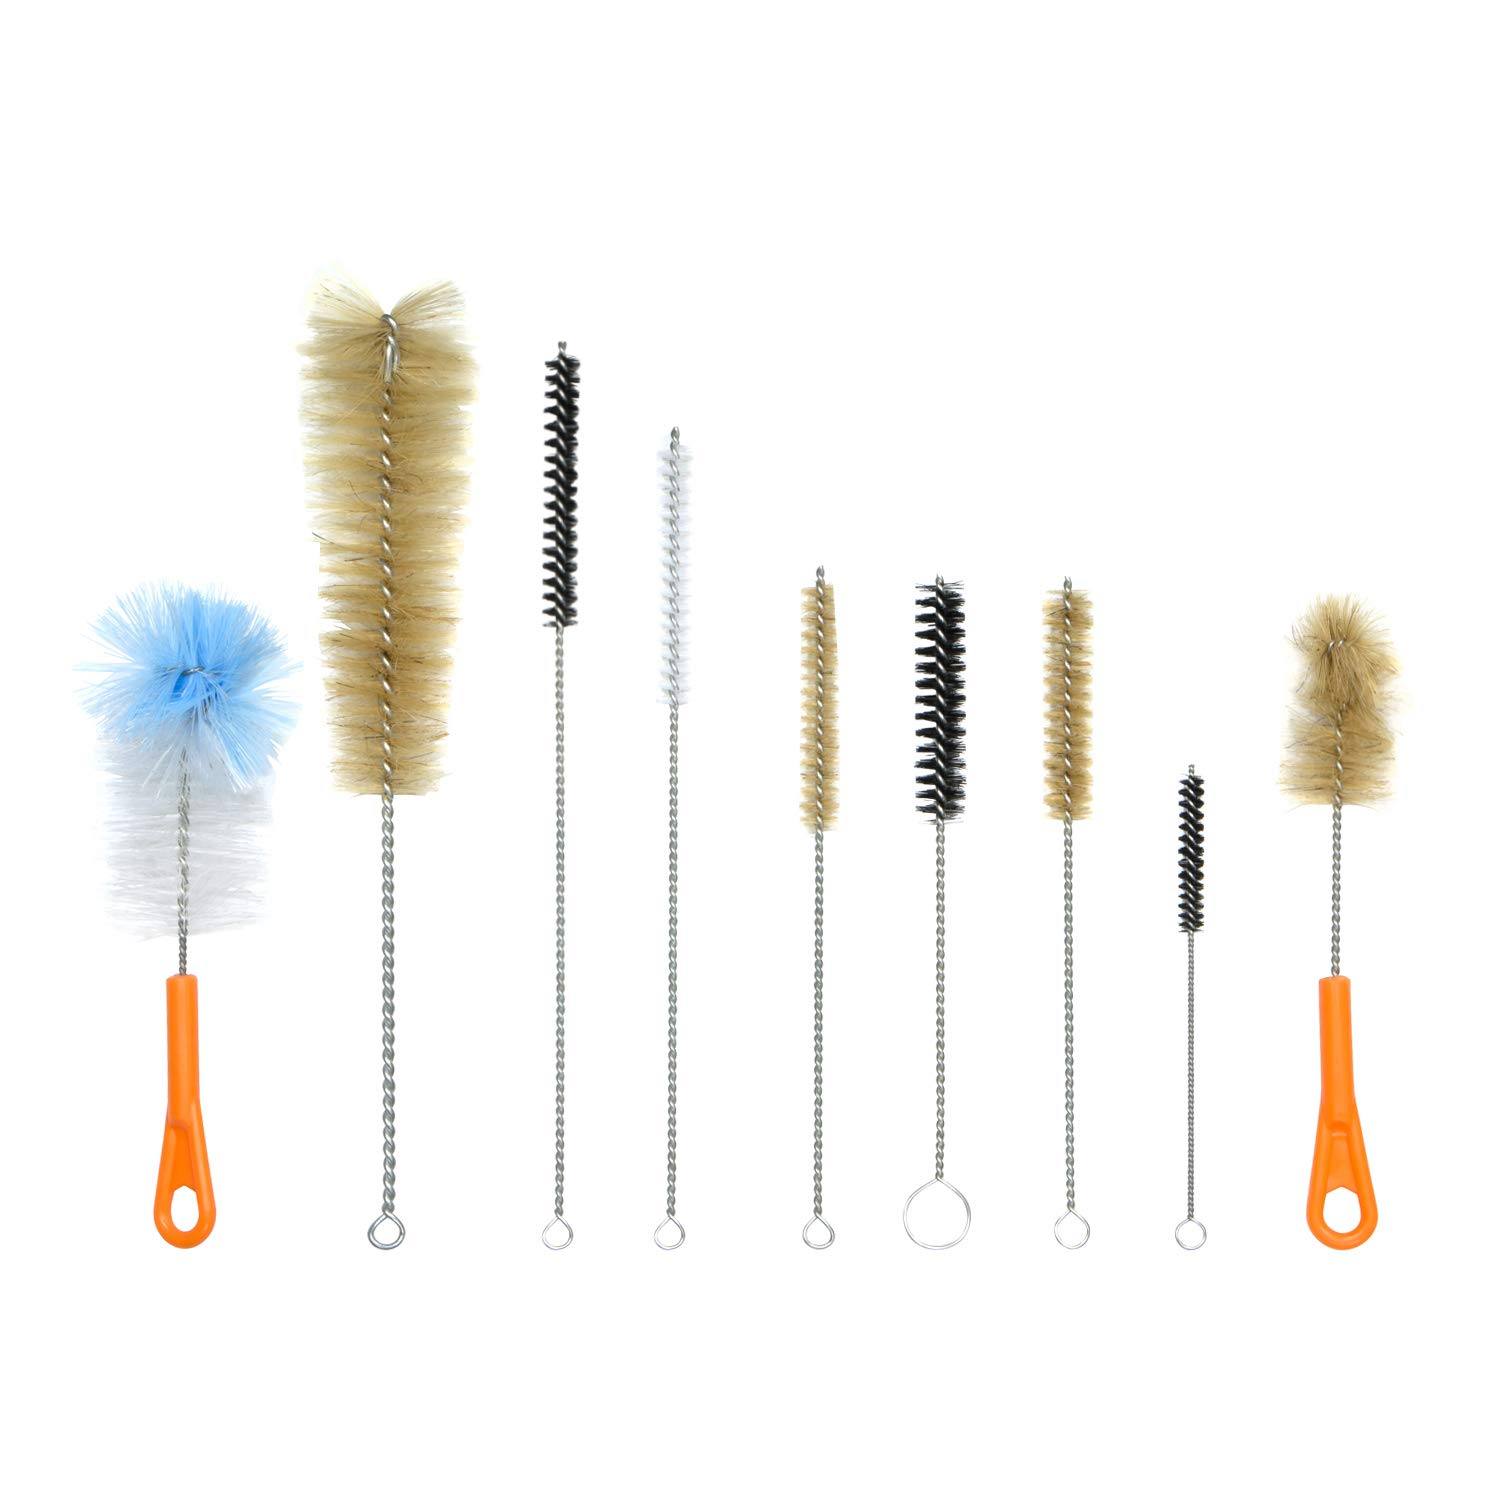 Houseables Bottle Brush, Pipe Cleaning Kit, Bong Brushes, Water Bubbler, Hose Tips Cleaner, 9 Pieces, Nylon, Natural & Synthetic Bristles, Small, Long, Scrubber for Tubes, Straws, Canning Jars BB9-OL-11IN